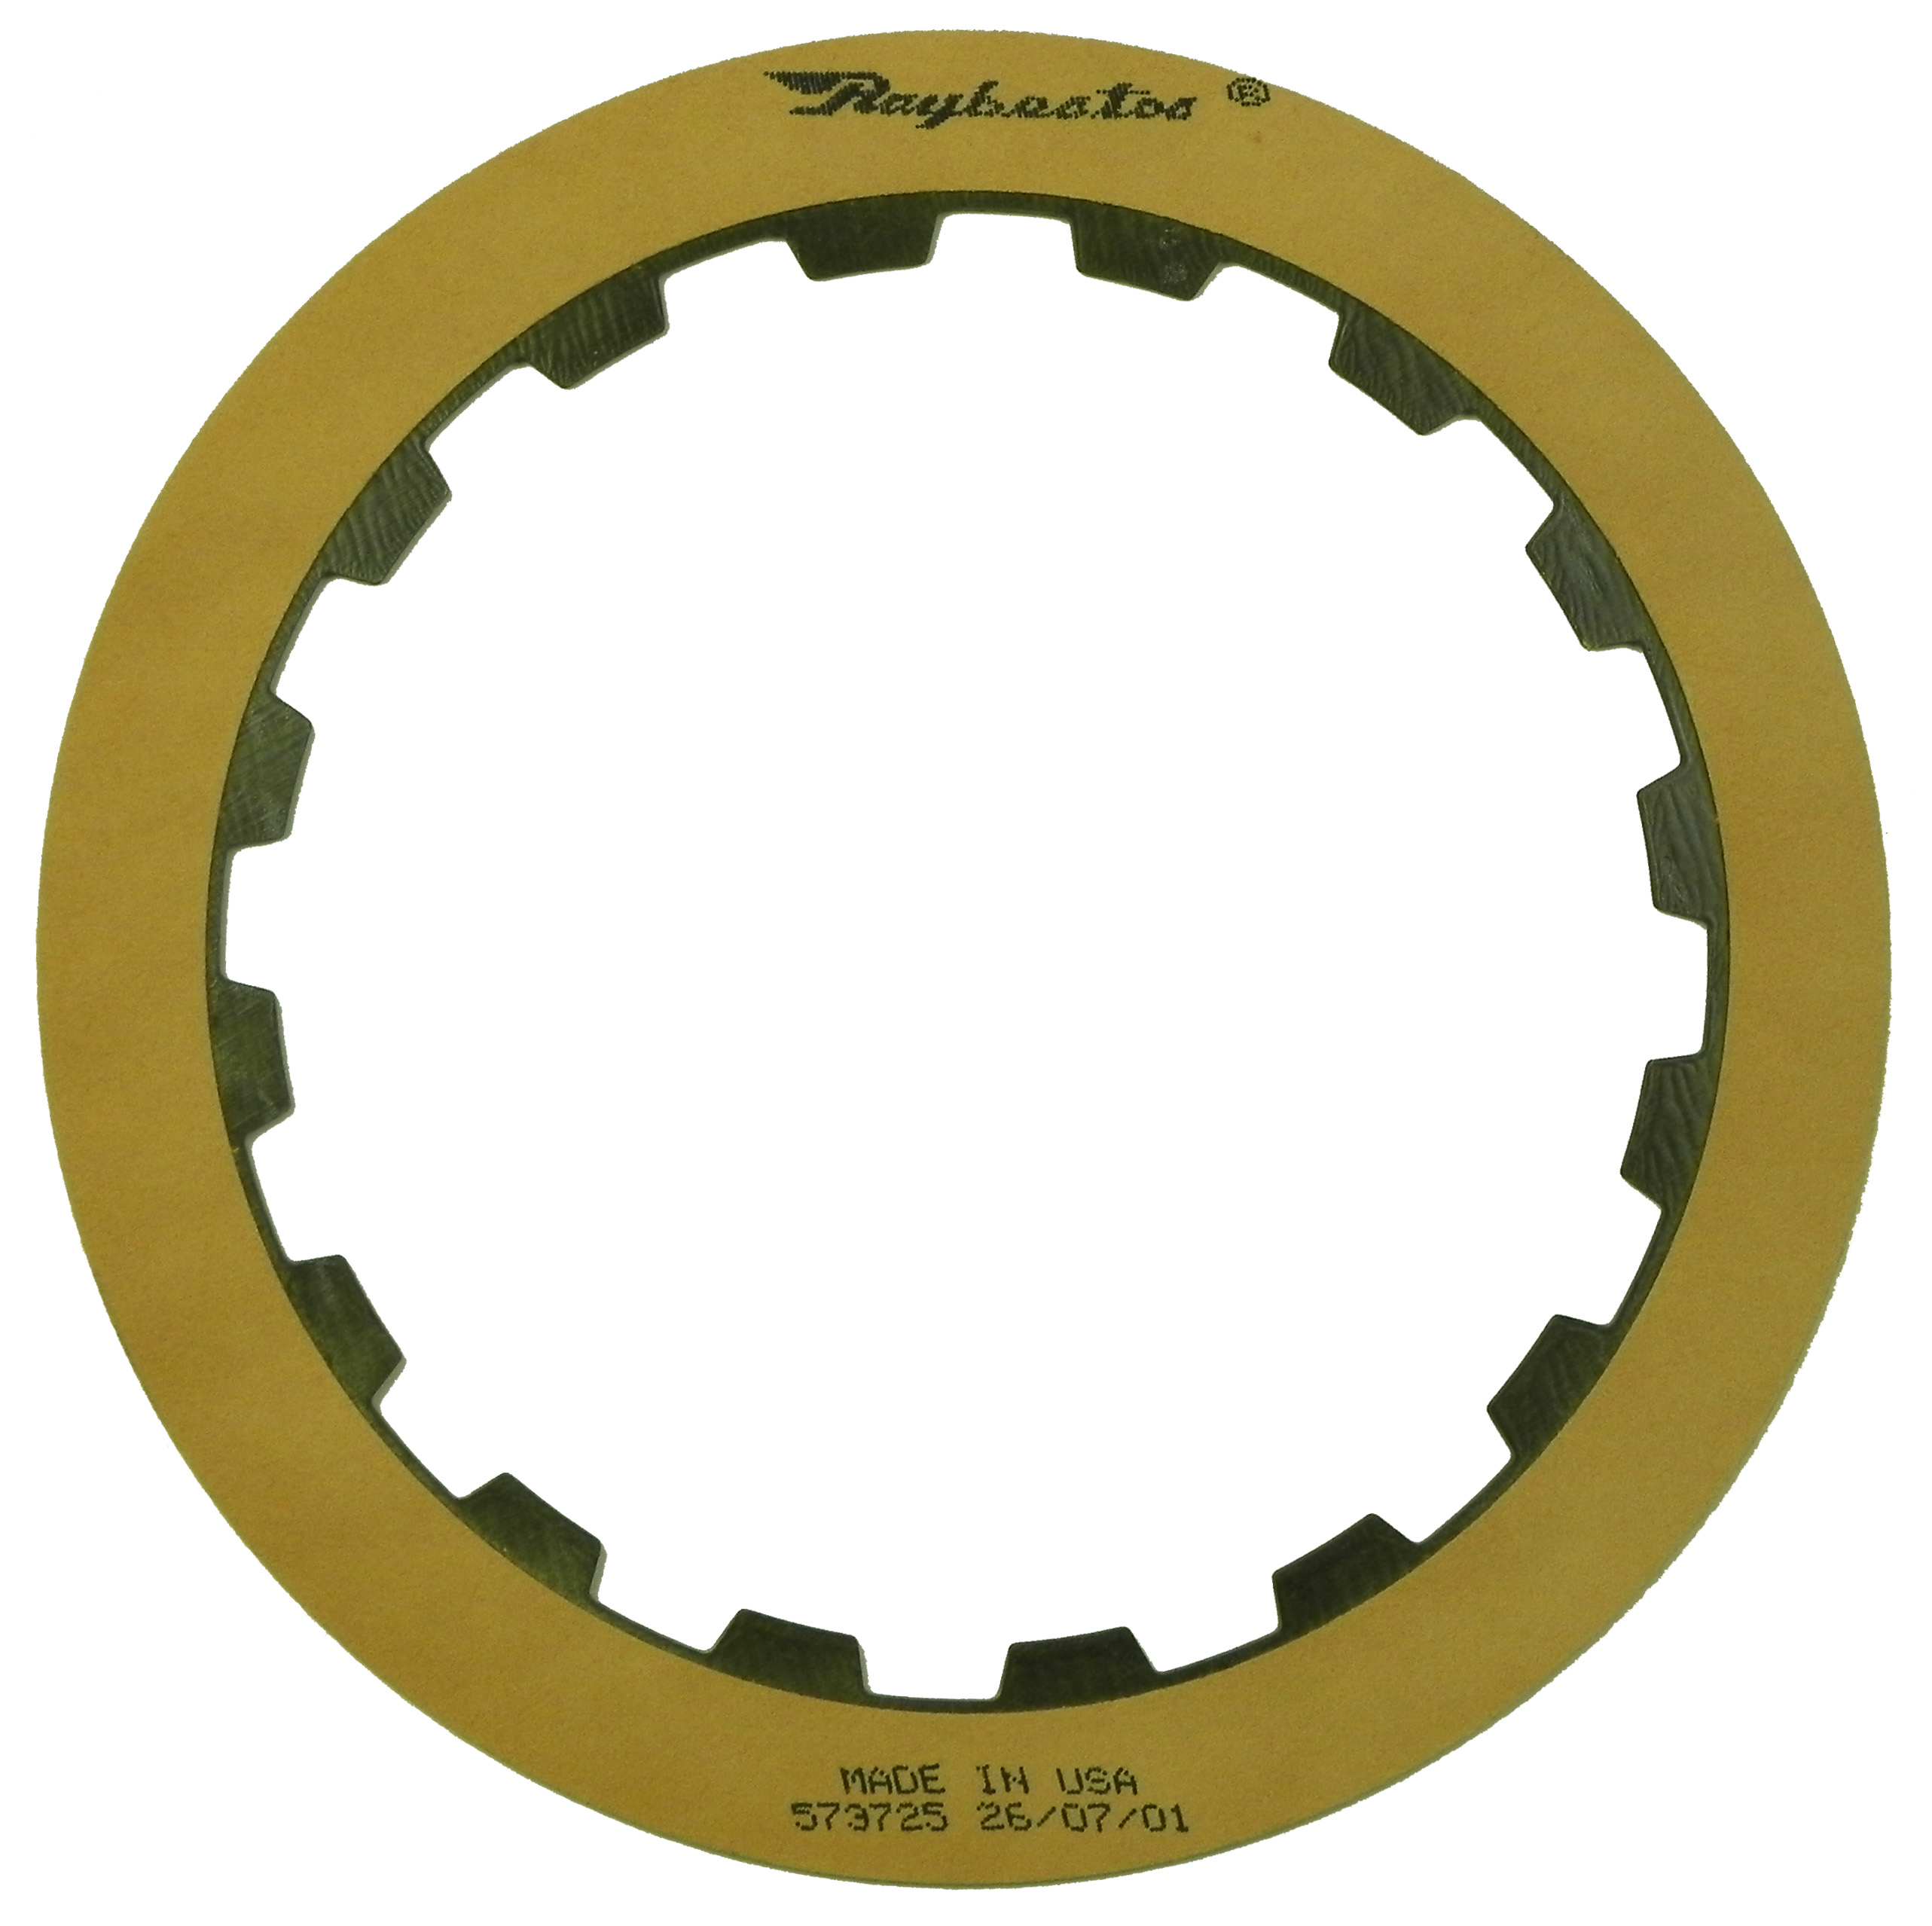 R573725 | 1973-1987 Friction Clutch Plate OE Replacement Low, Reverse